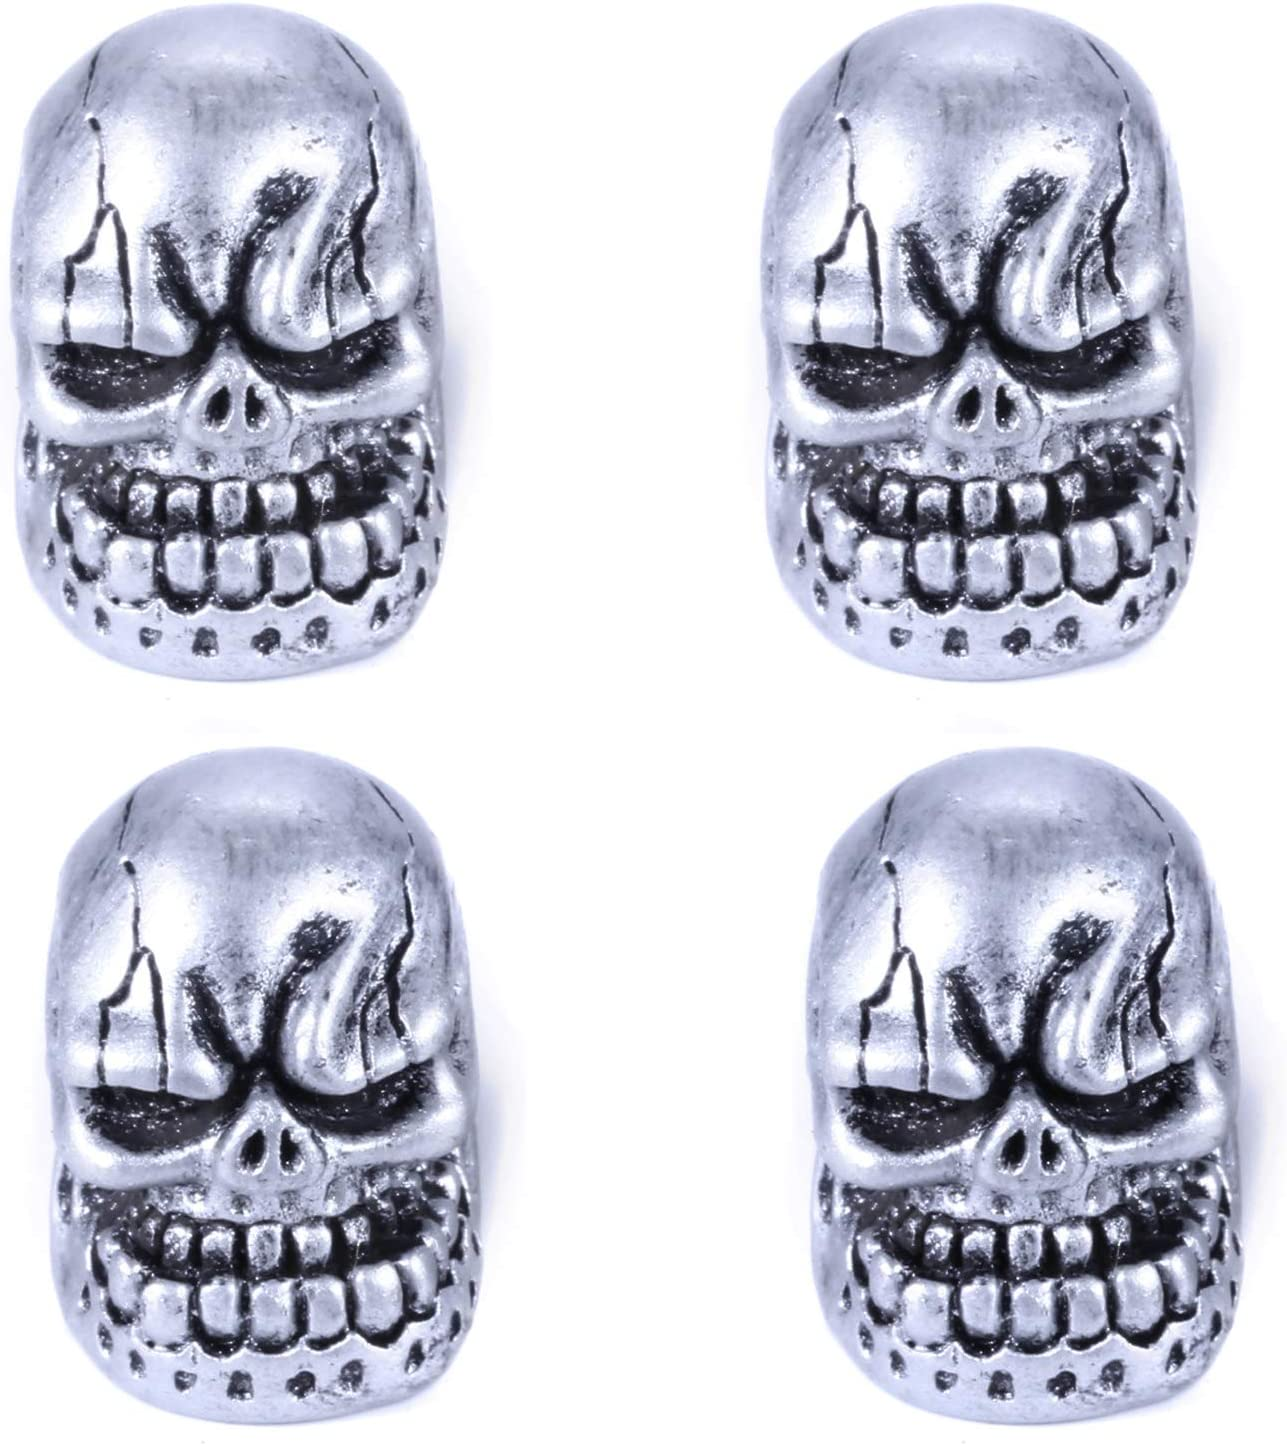 Abfer Air Tire Vale Cap Skull Shape Car Valve Stem Caps Replacement Covers with Big Tooth Fit Most Vehicle Truck Motorcycles Bikes Silver